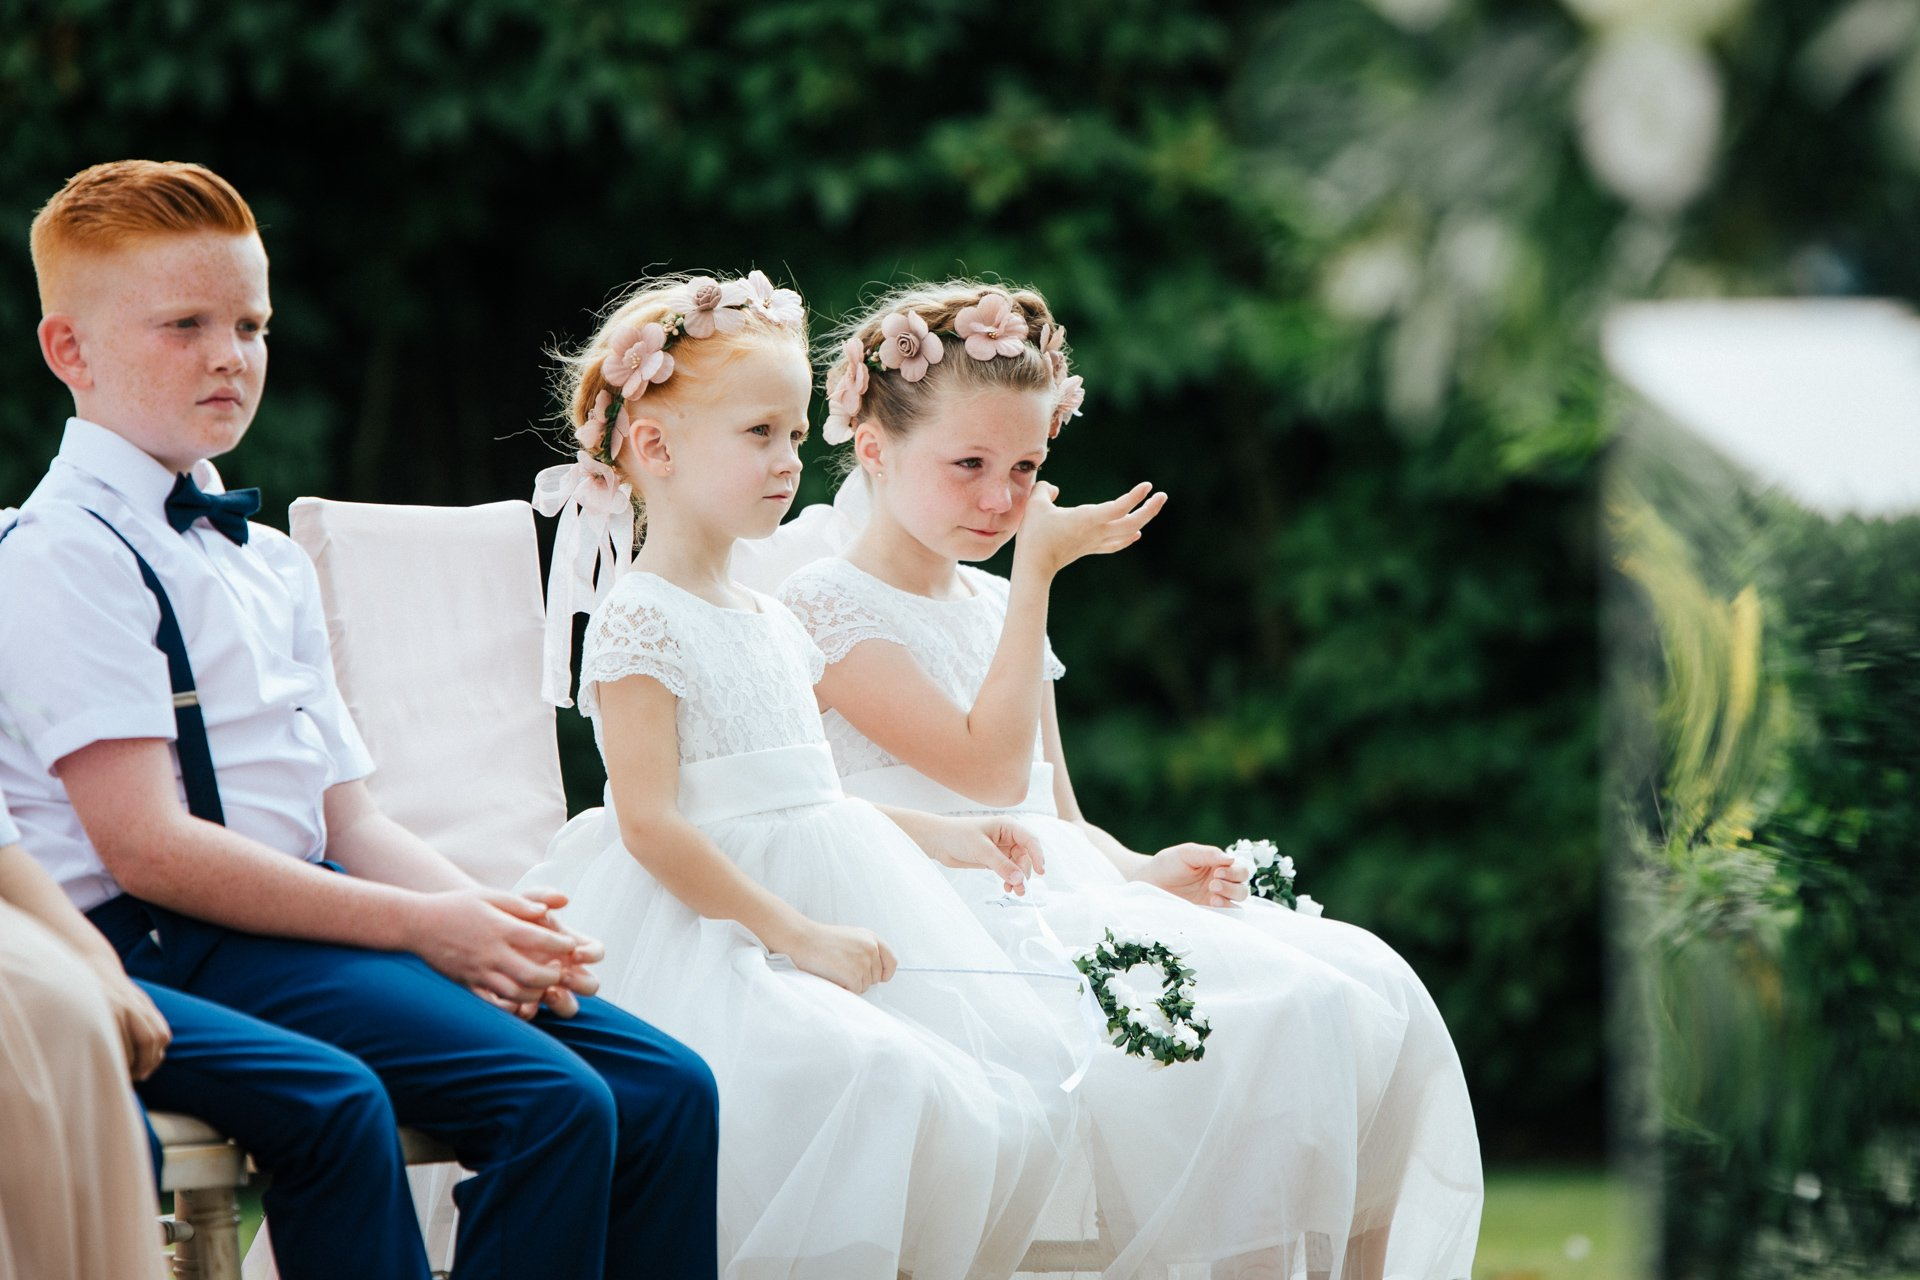 Natural moment capturing a bridesmaid wiping a tear away